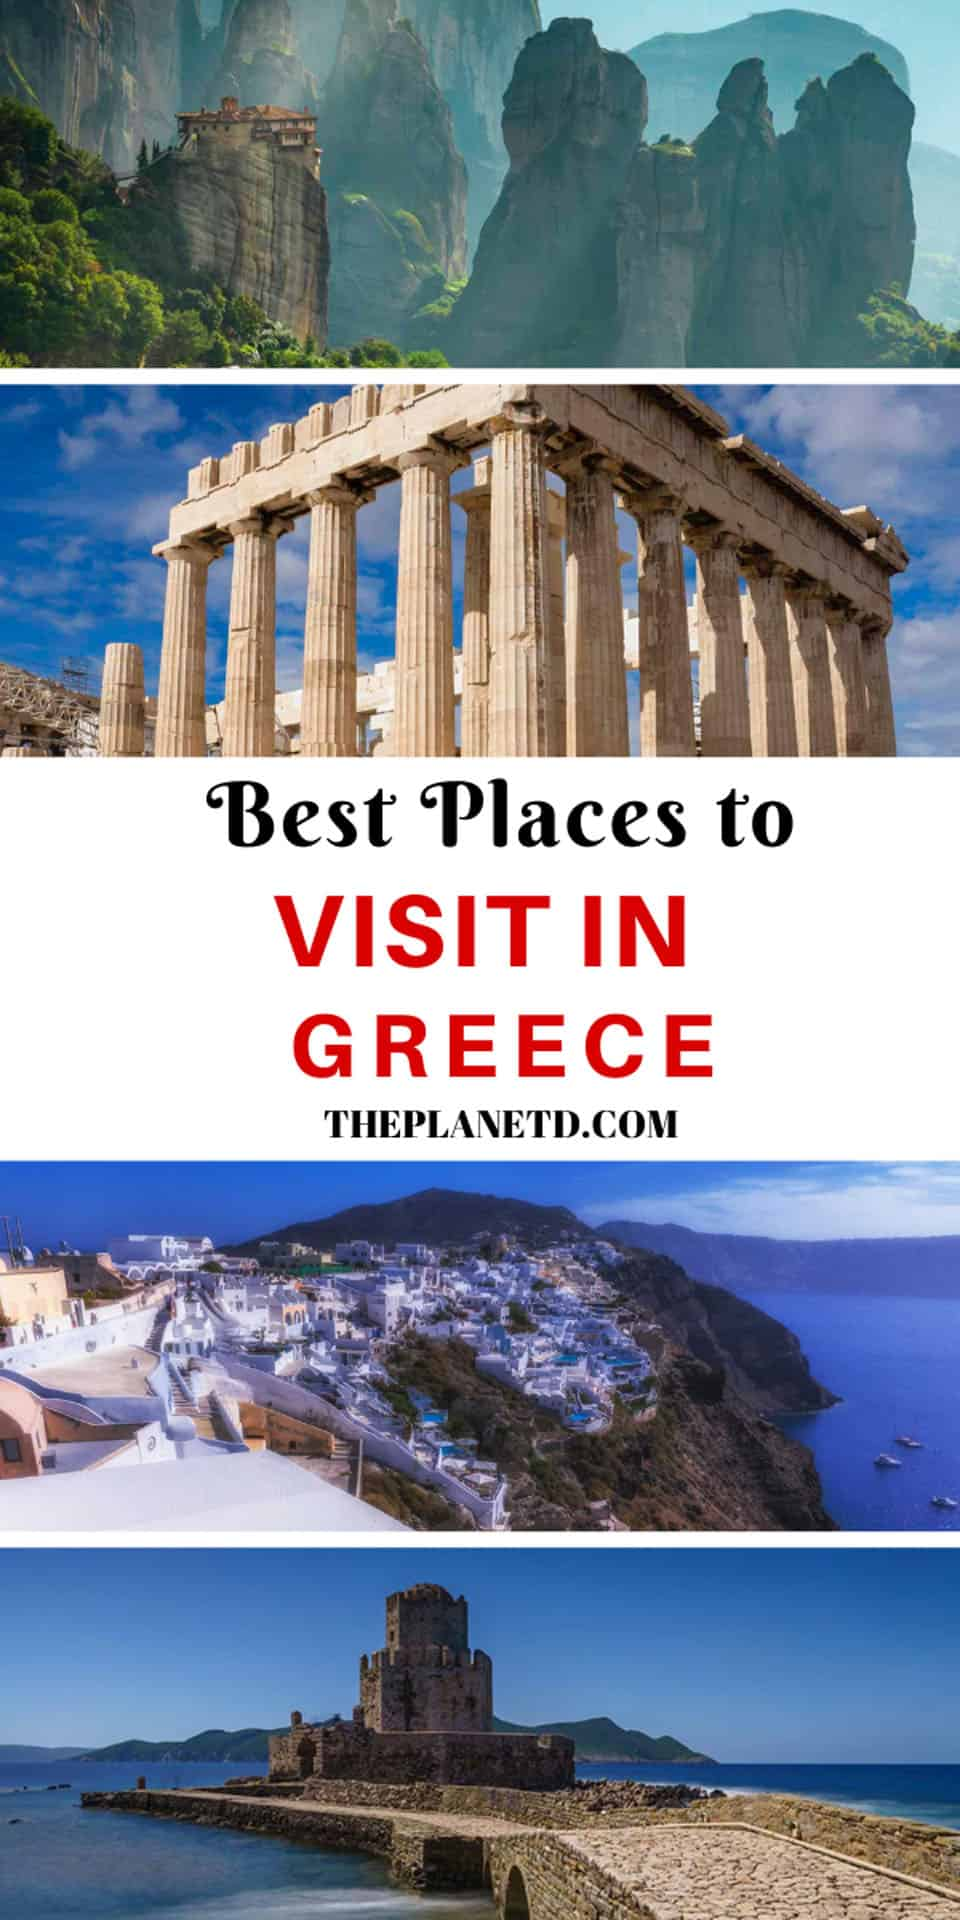 the best places to visit in greece and most beautiful destinations